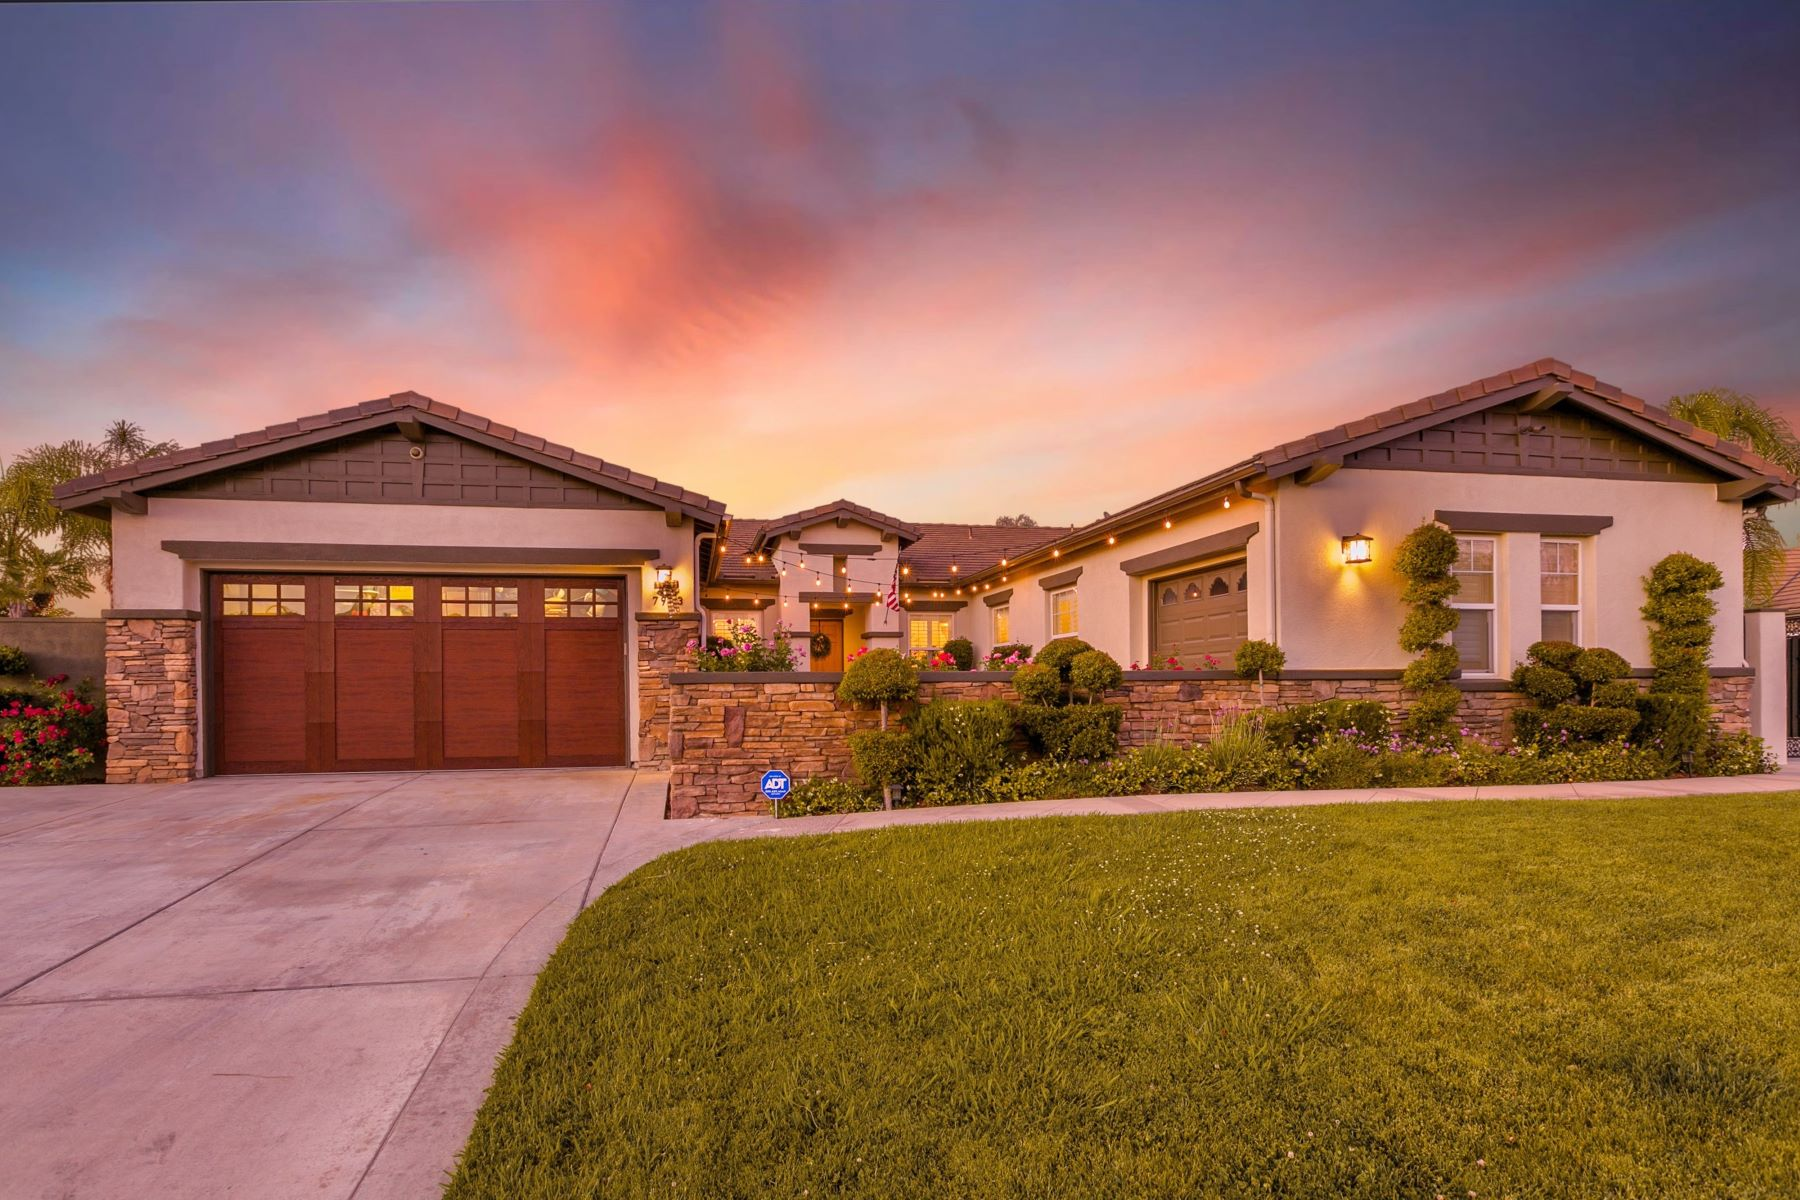 Single Family Homes for Sale at 7943 Armagosa Drive Riverside, California 92508 United States